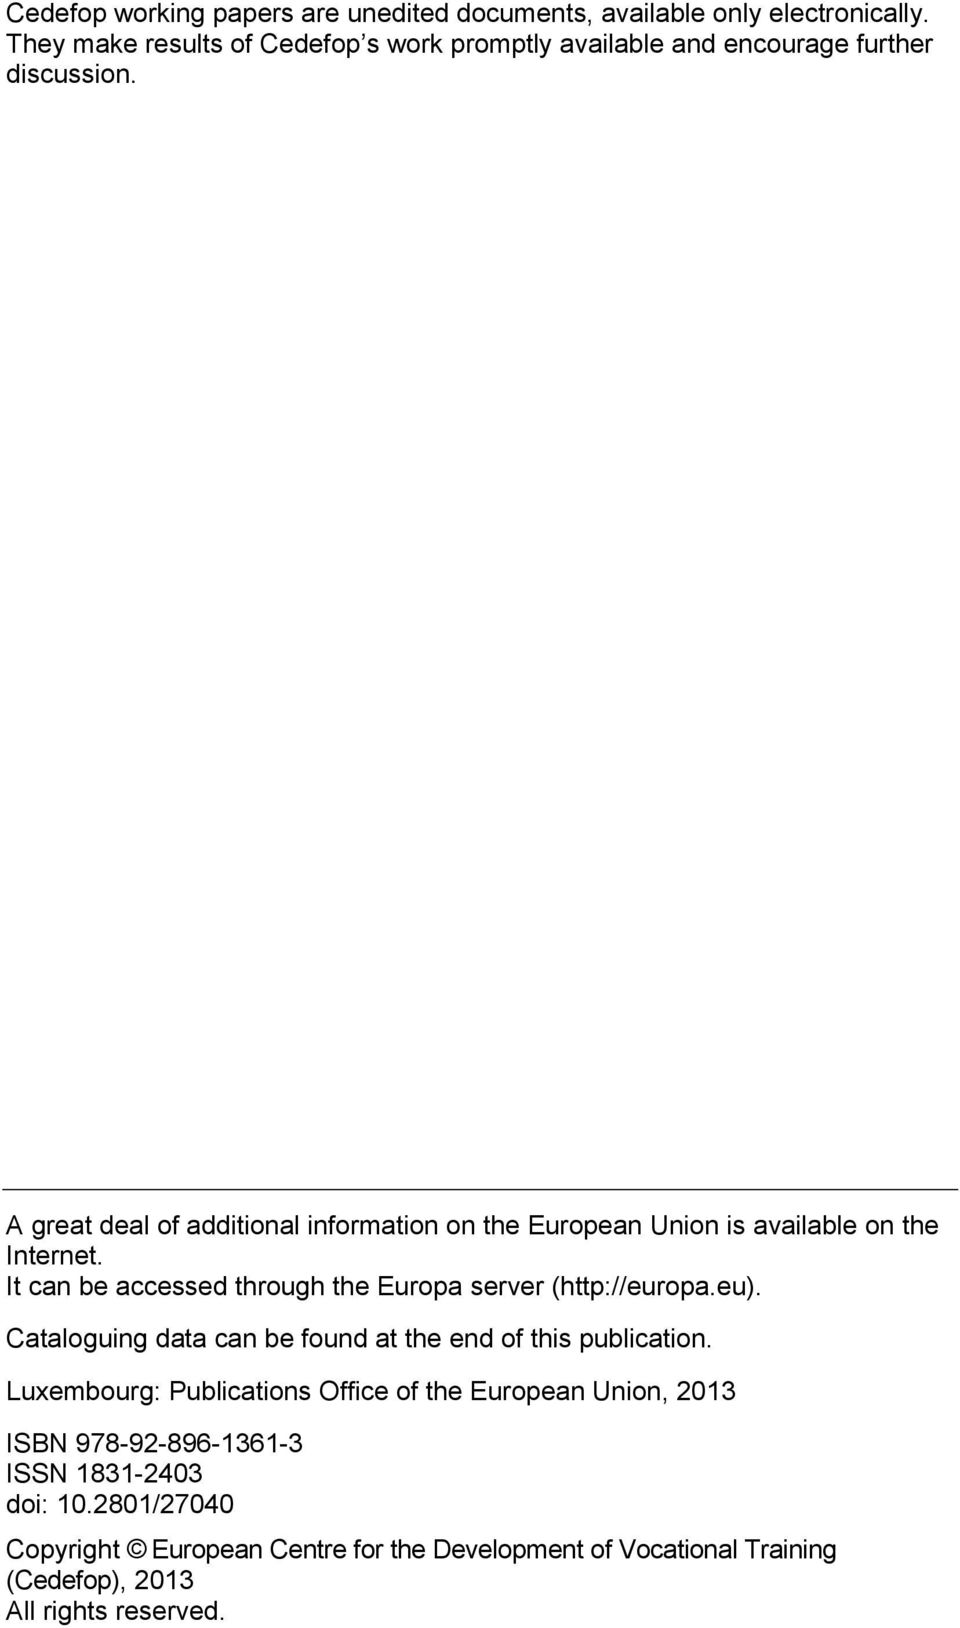 A great deal of additional information on the European Union is available on the Internet. It can be accessed through the Europa server (http://europa.